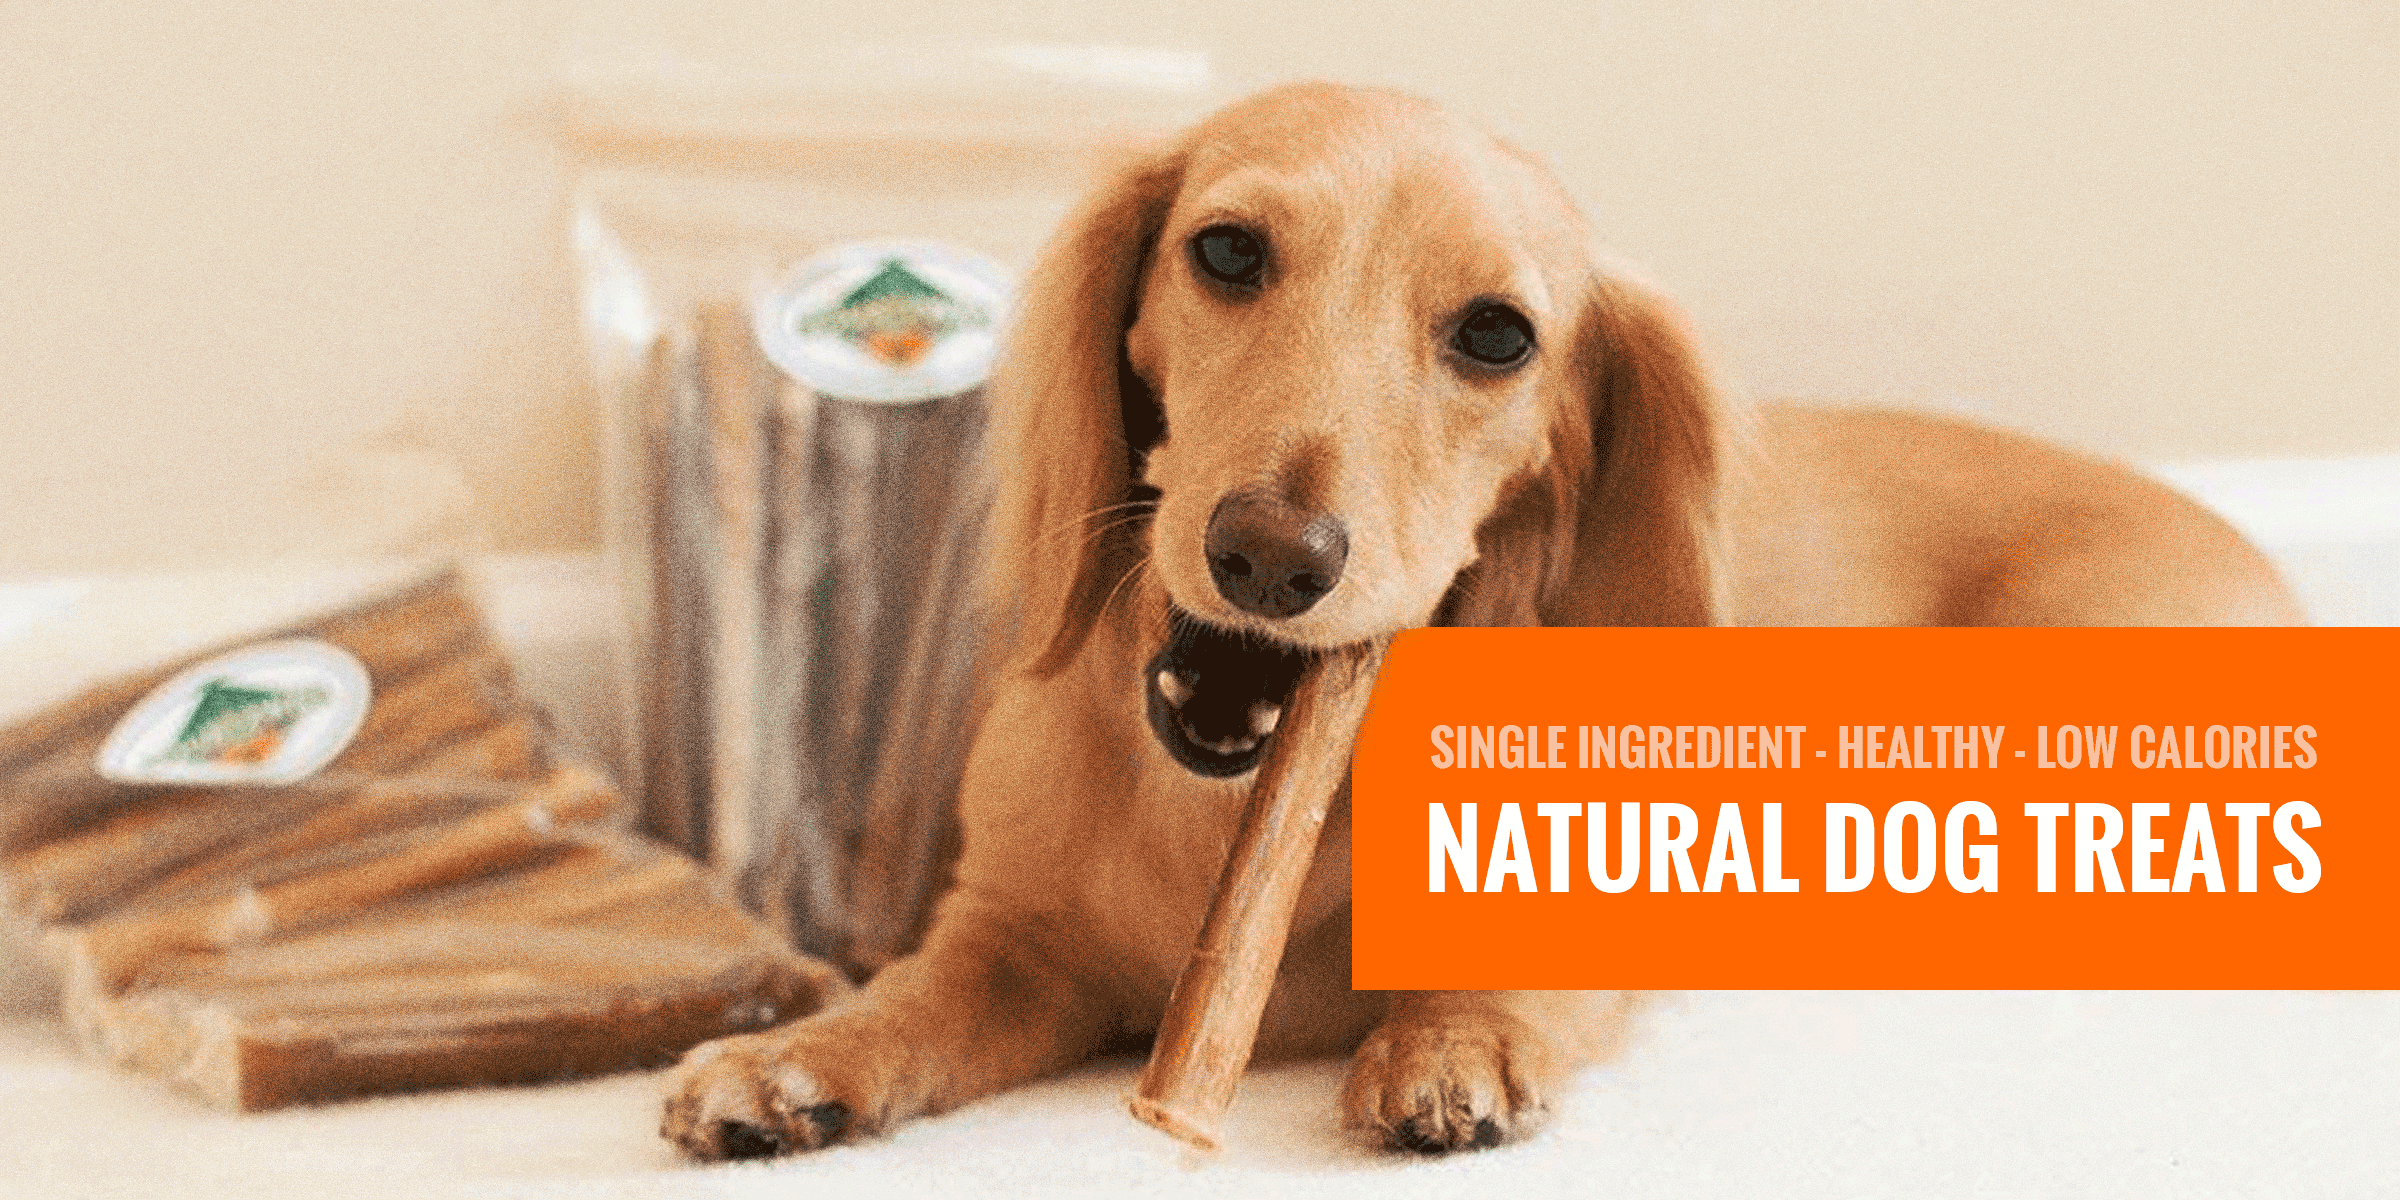 10 Best Natural Dog Treats Single Ingredient Grain Free